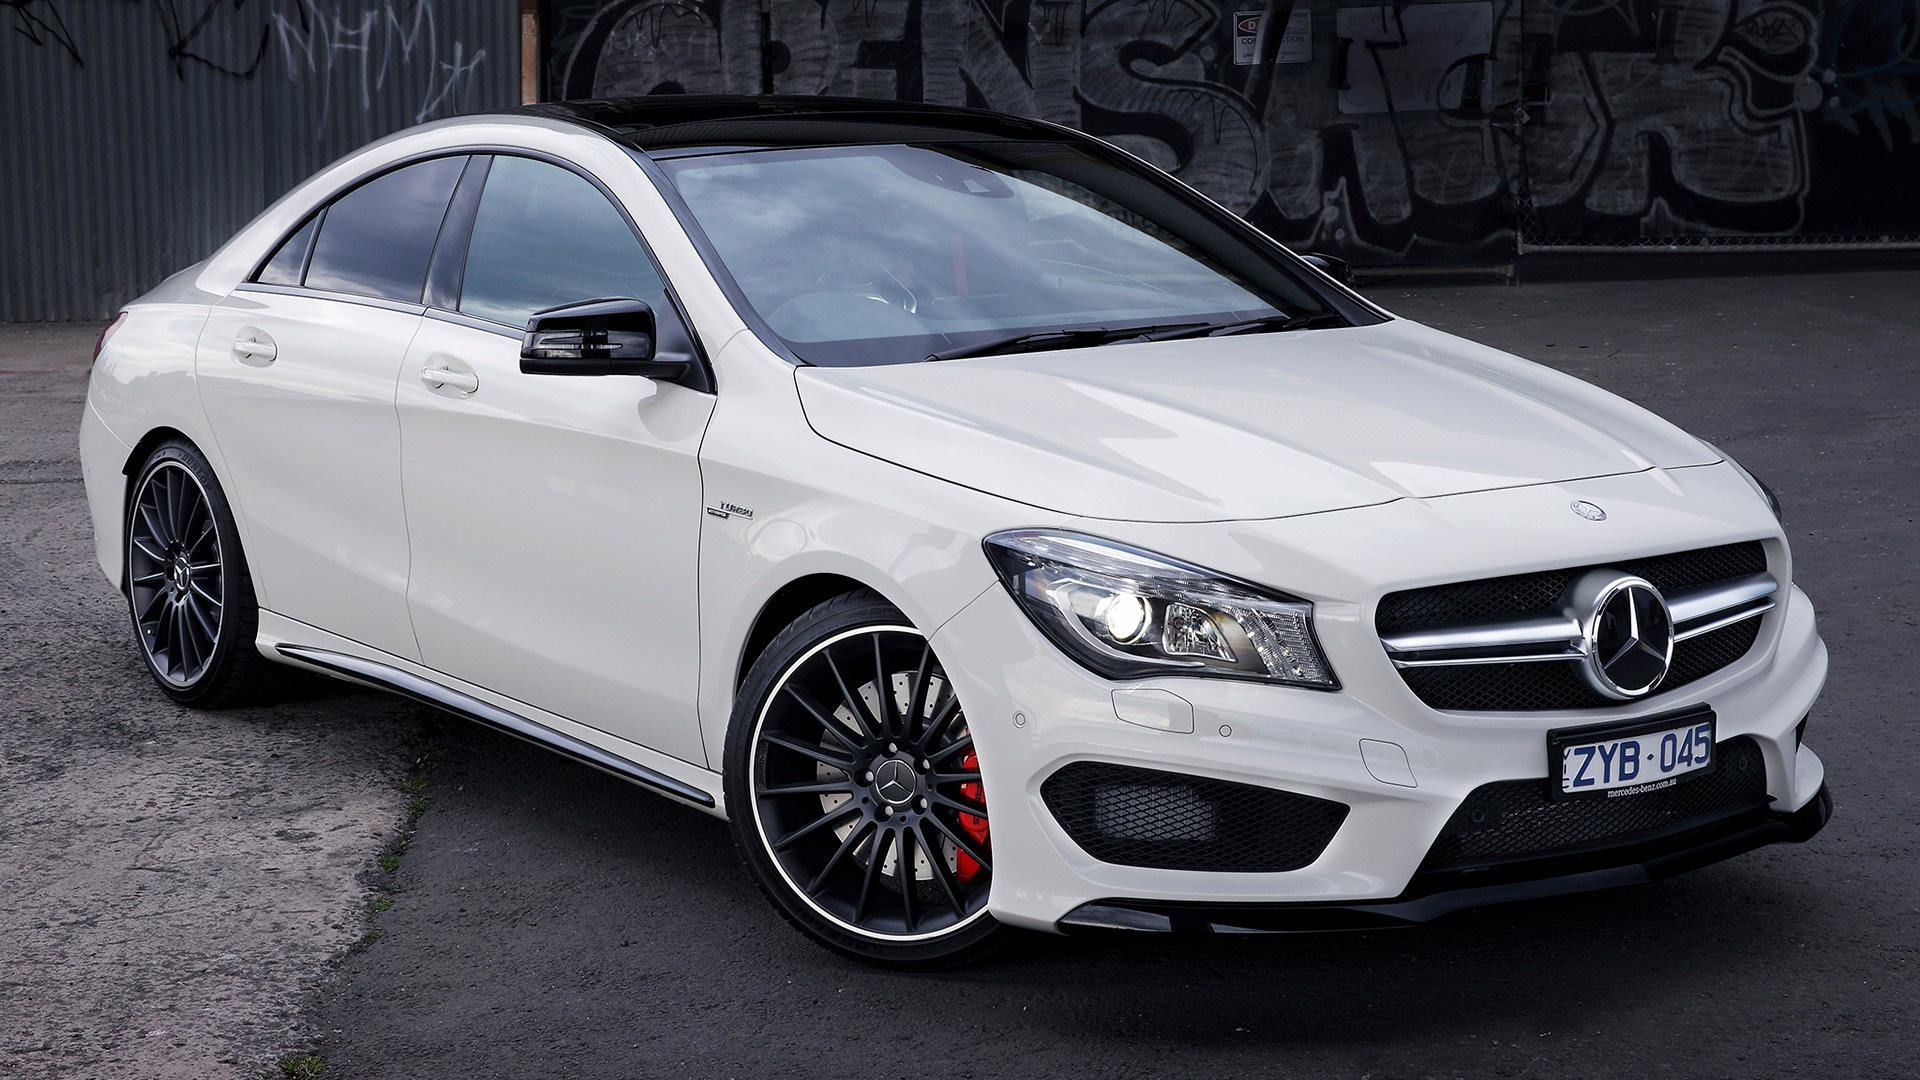 Mercedes Amg Suv >> 2013 Mercedes-Benz CLA 45 AMG (AU) - Wallpapers and HD ...